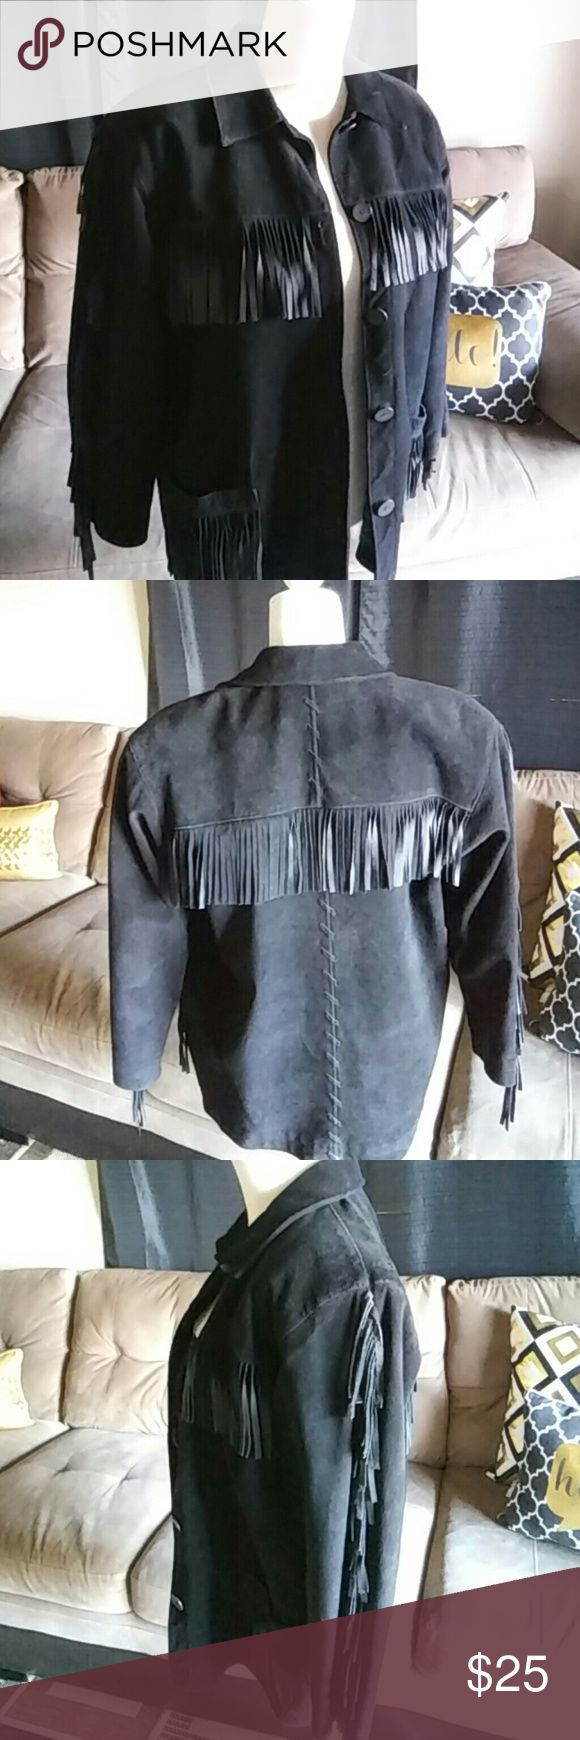 Adrienne Vittadini Vintage Fringe leather Jacket Pre loved Adrienne Vittadini Vintage genuine leather Jacket RN#57675 signs of minor fading has two small holes on right upper side. Thank you (: Adrienne Vittadini Jackets & Coats